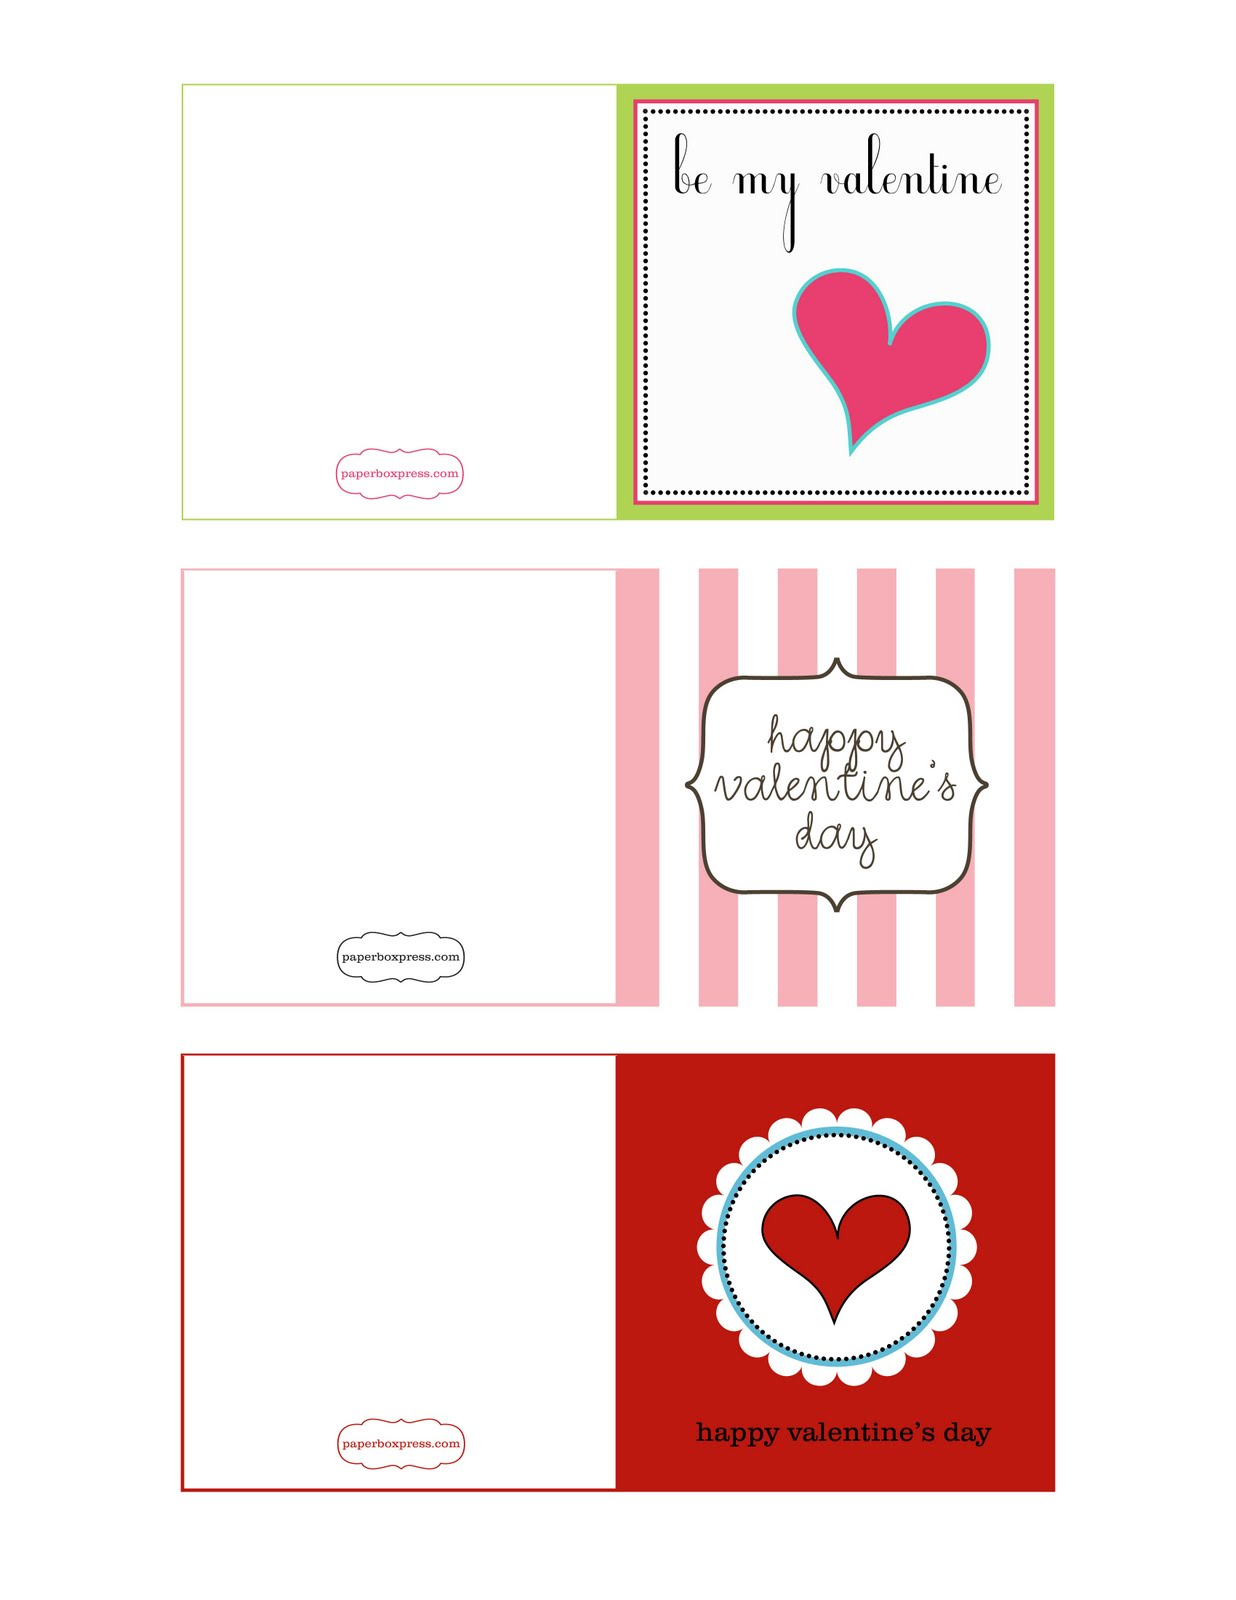 Fashionable Friends Teachers Free Valentine Printables Ff Paperbox Press Freebie Free Printables Free Valentine Printables photos Free Valentine Printables